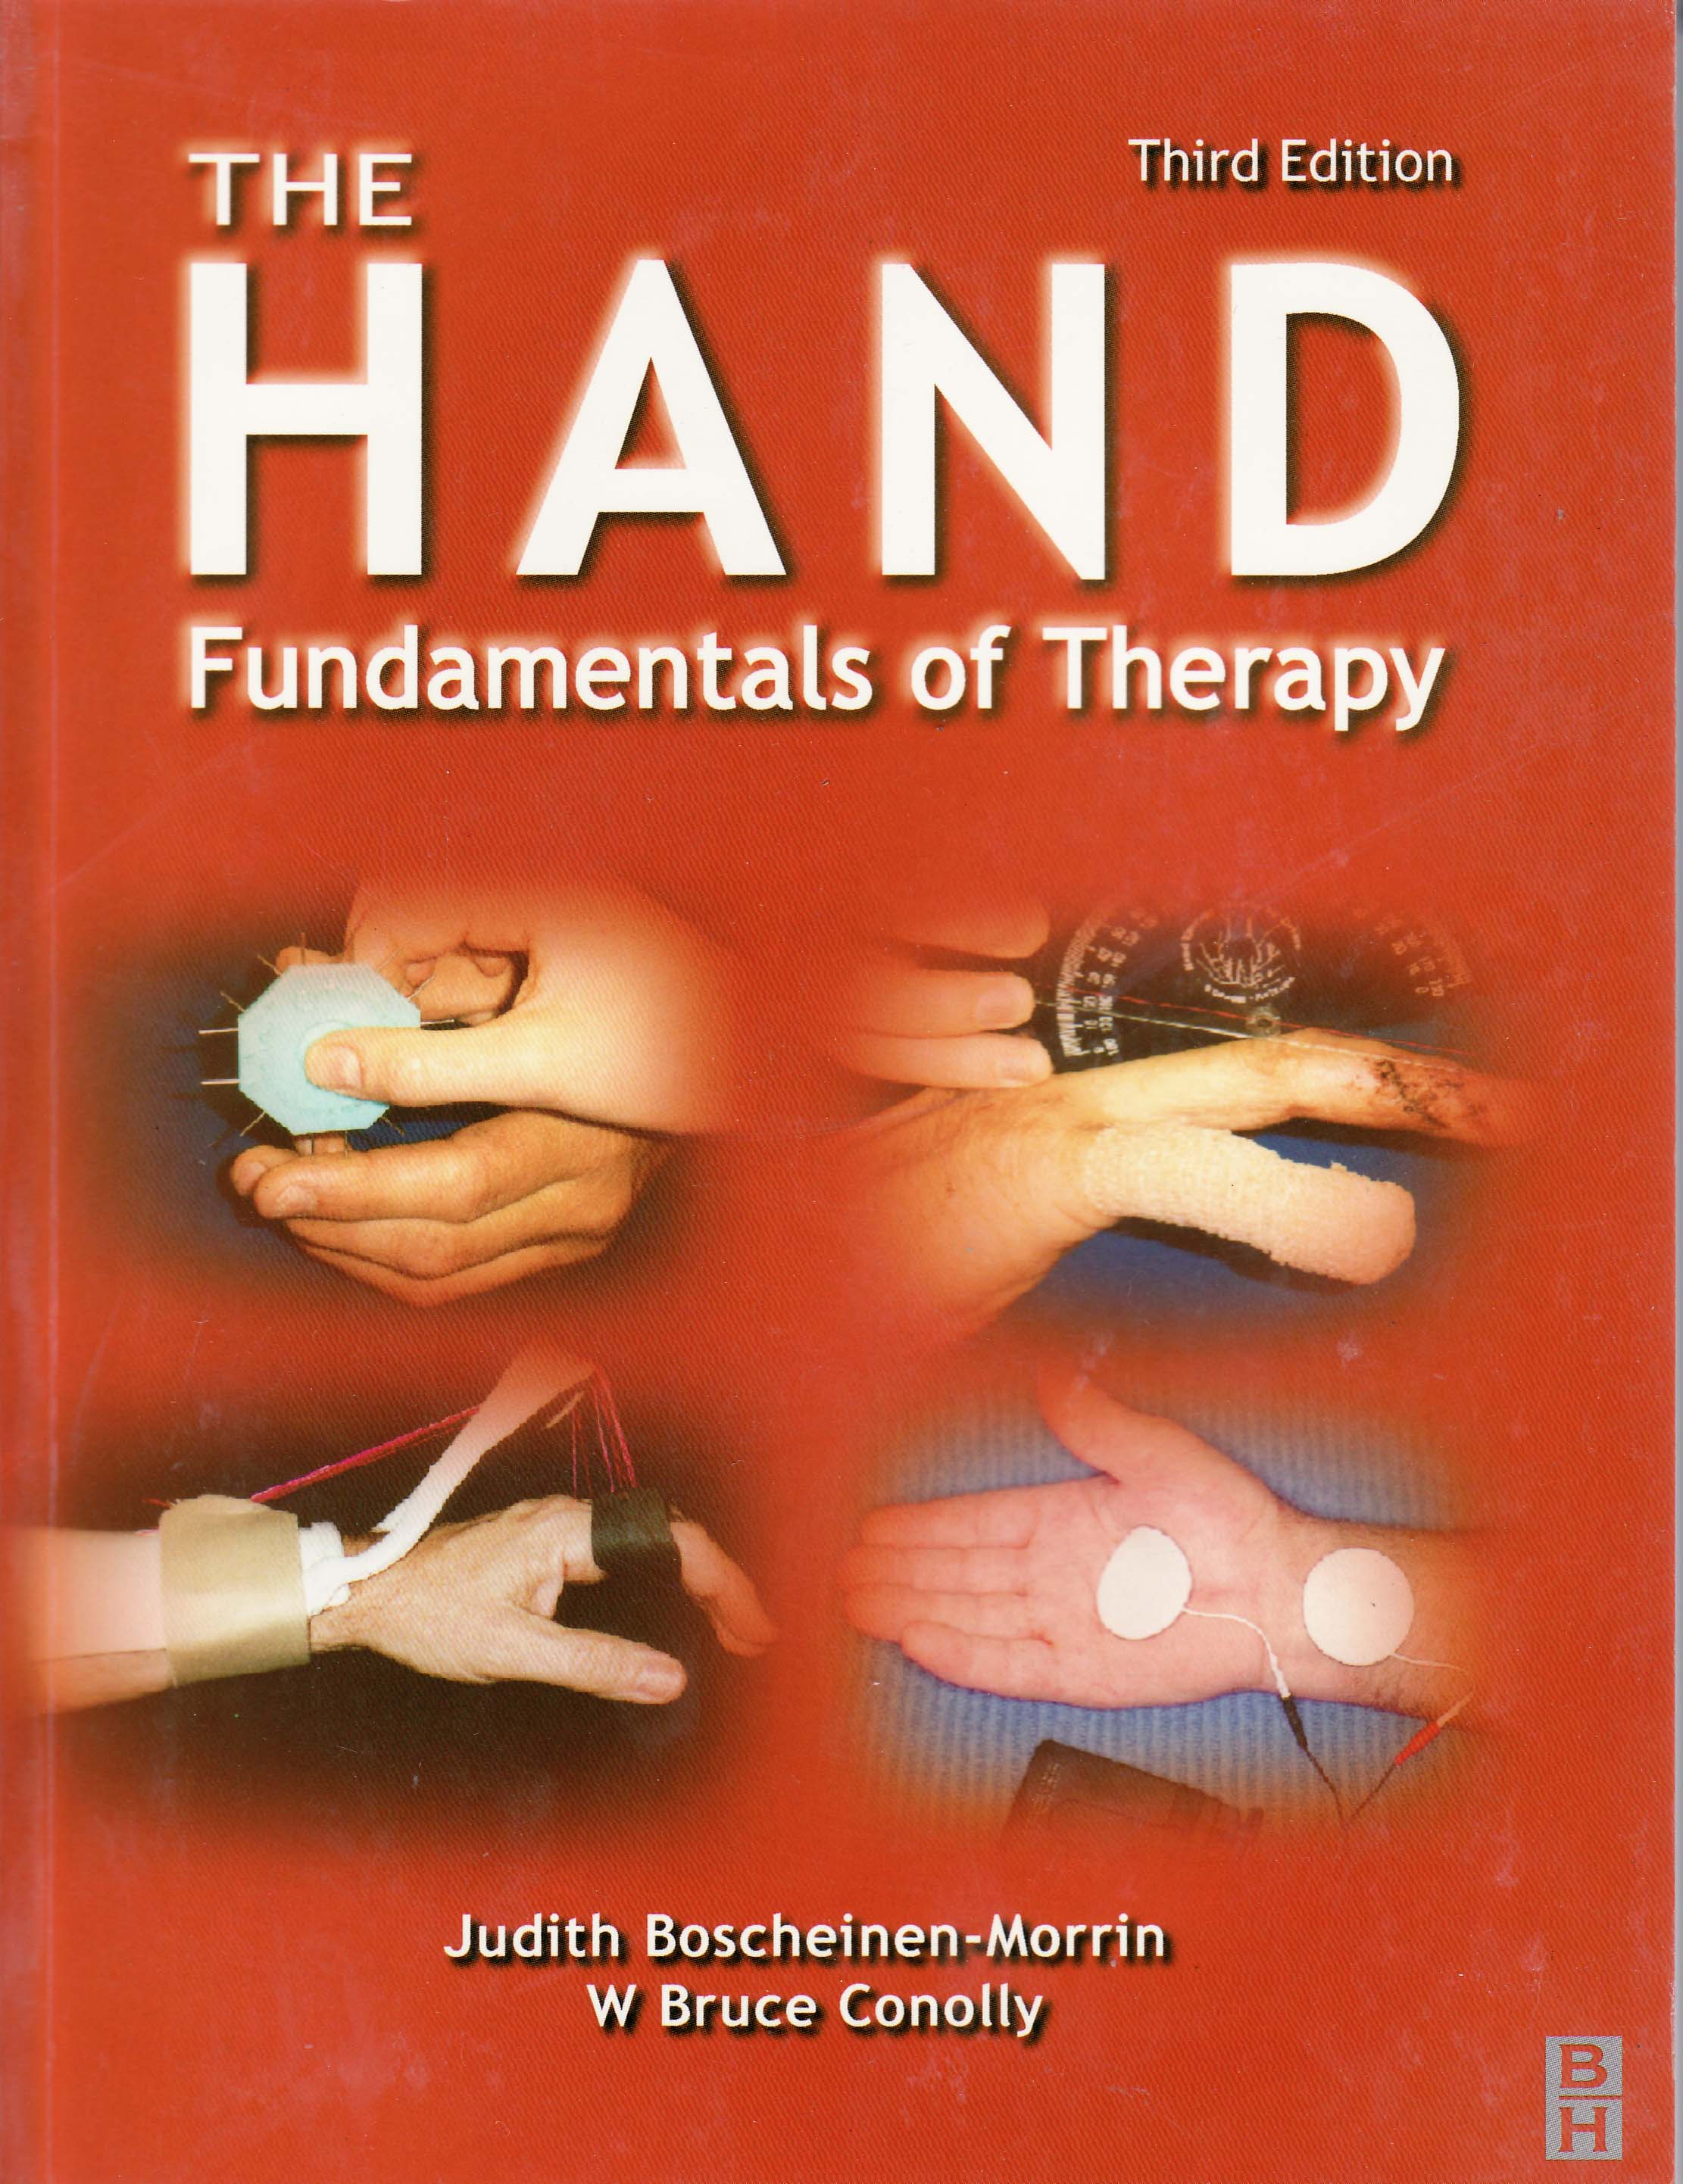 Home study course for physical therapy - The Hand Fundamentals Of Therapy Module 2